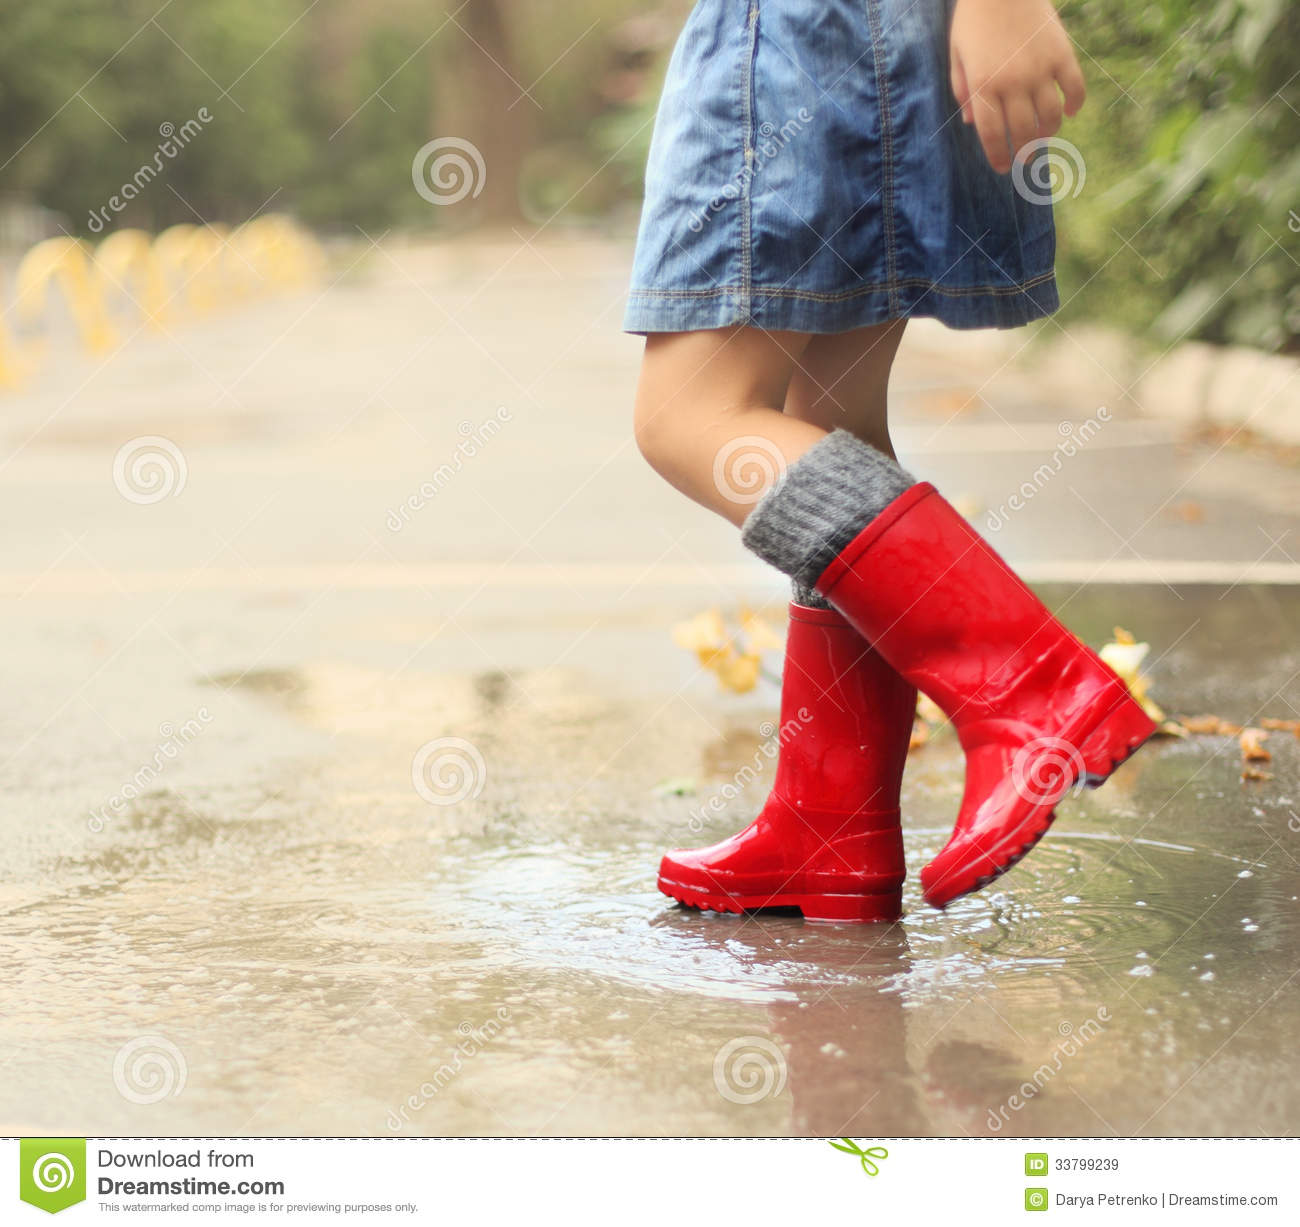 Child Wearing Red Rain Boots Jumping Into A Puddle Stock Photo ...